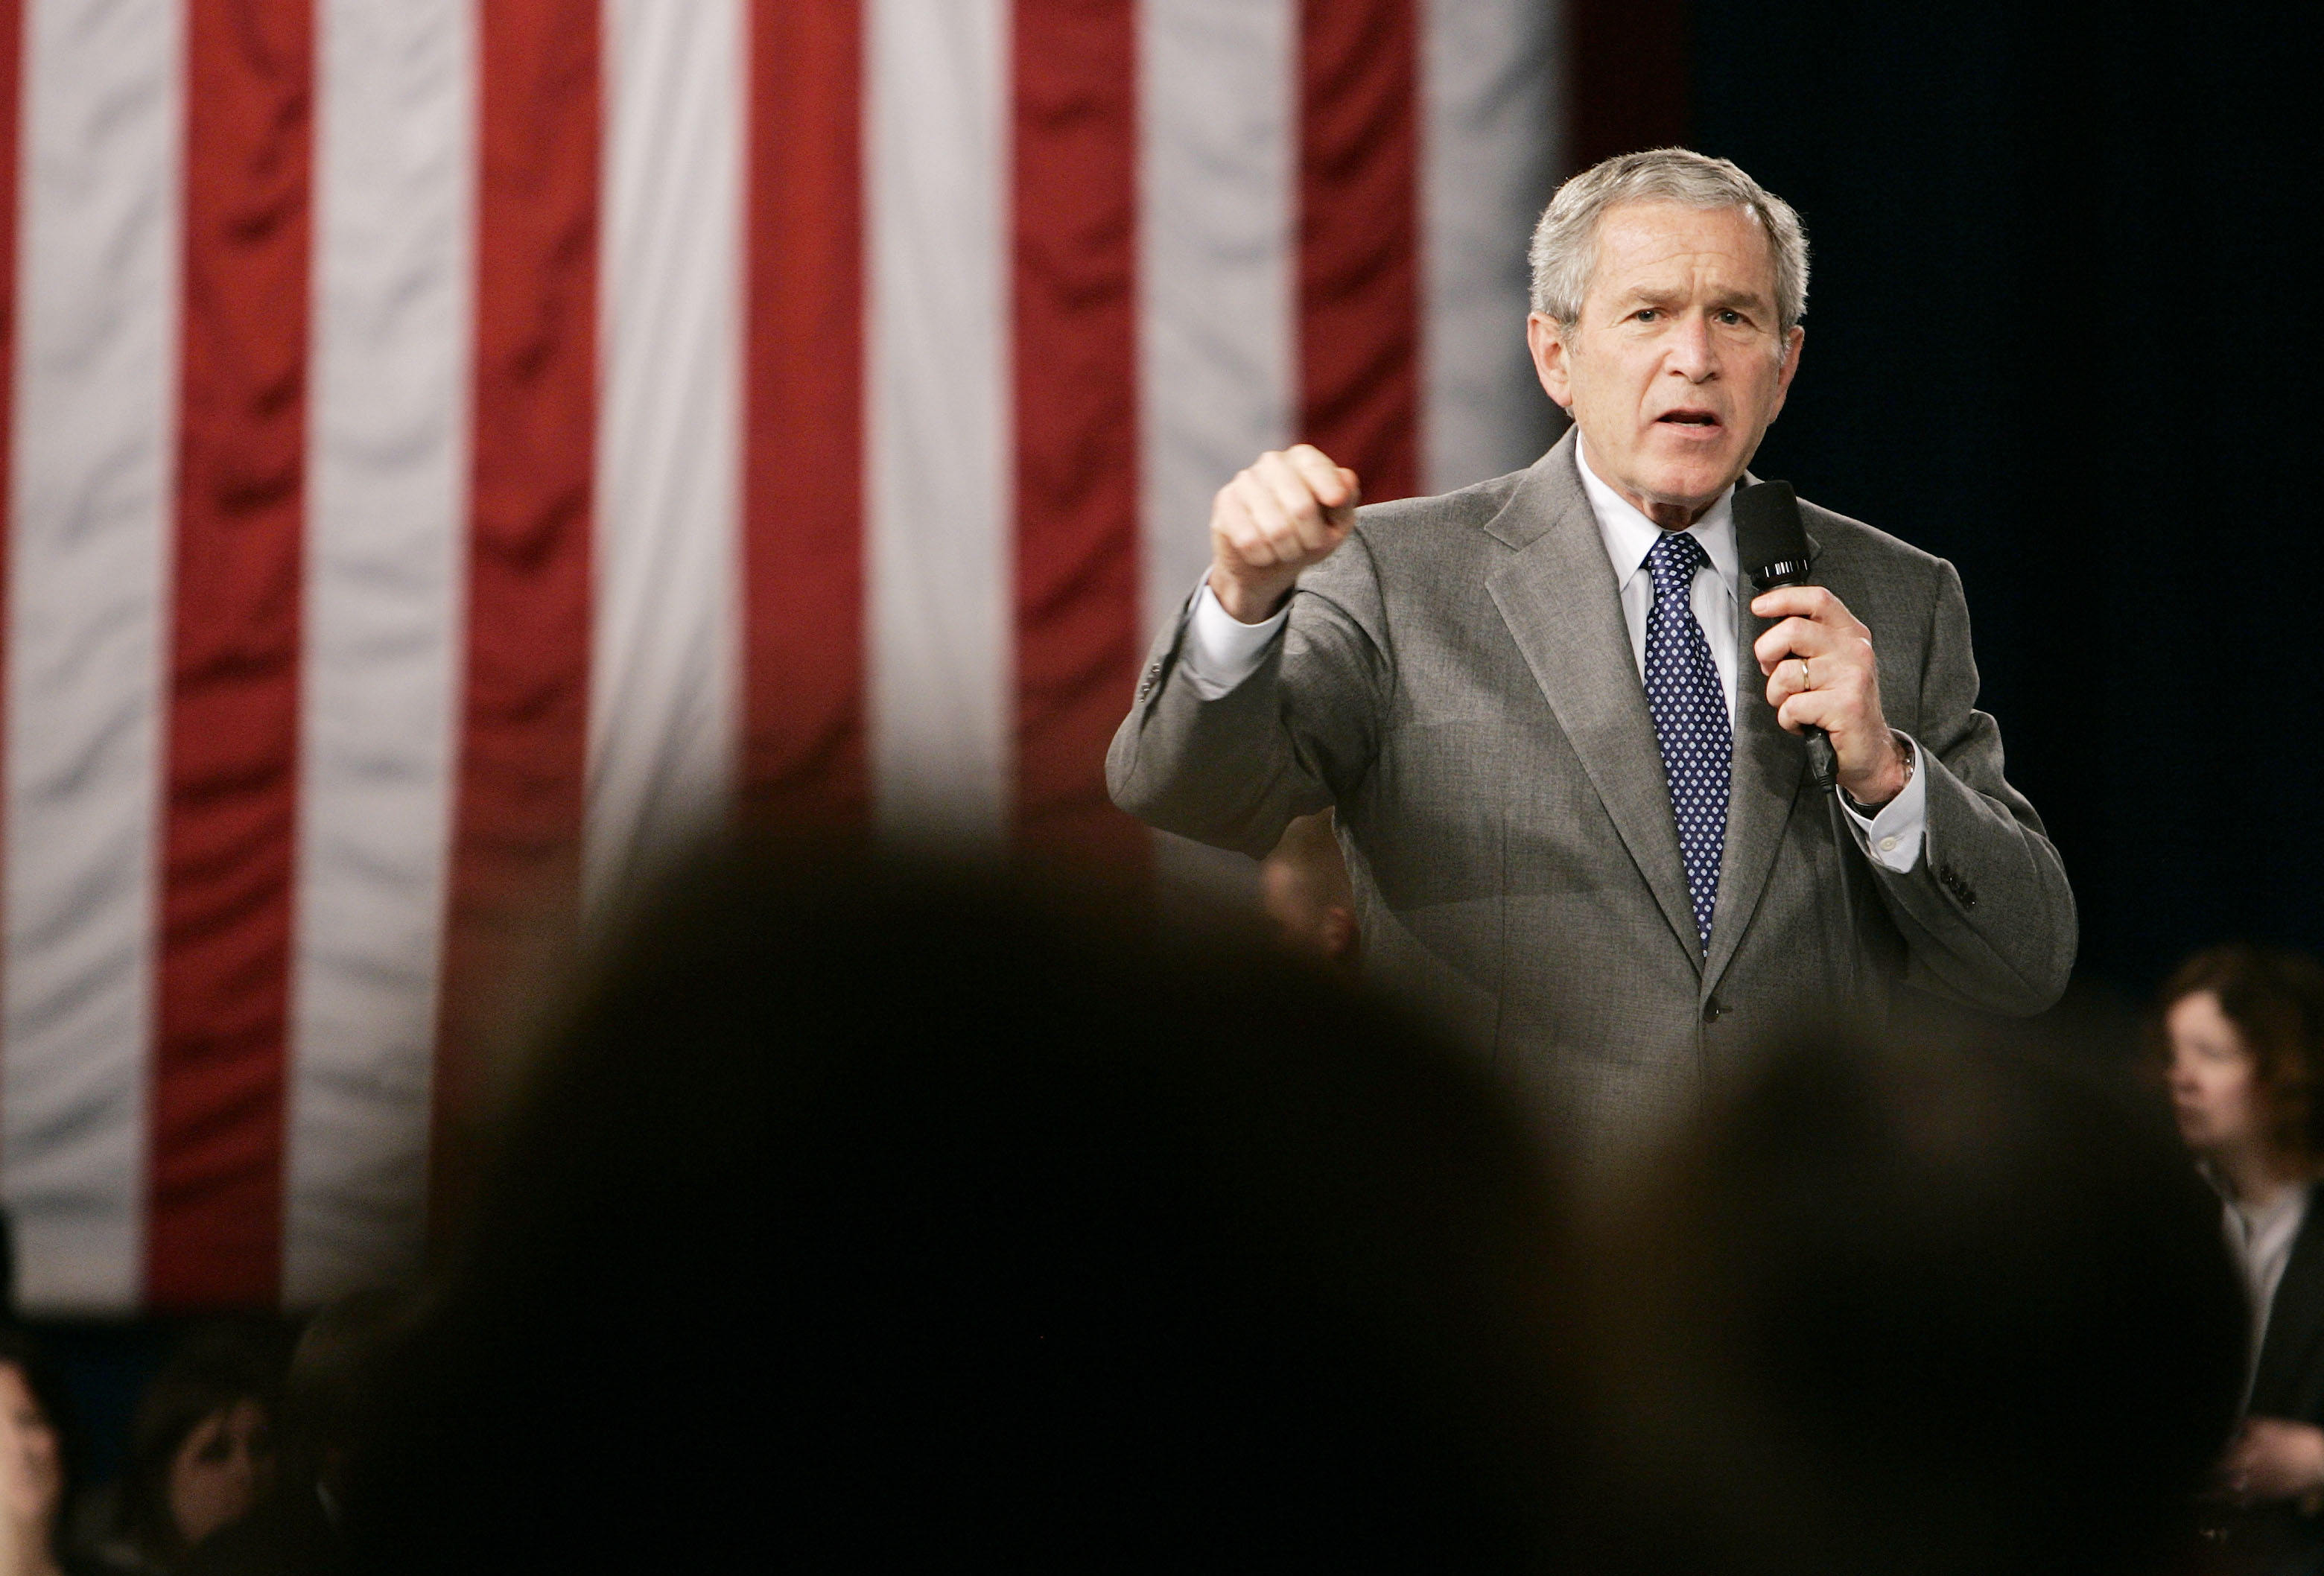 FILE - U.S. President George W. Bush speaks about his administration's war on terror while at Tippecanoe High School in Tipp City, Ohio, April 19, 2007.